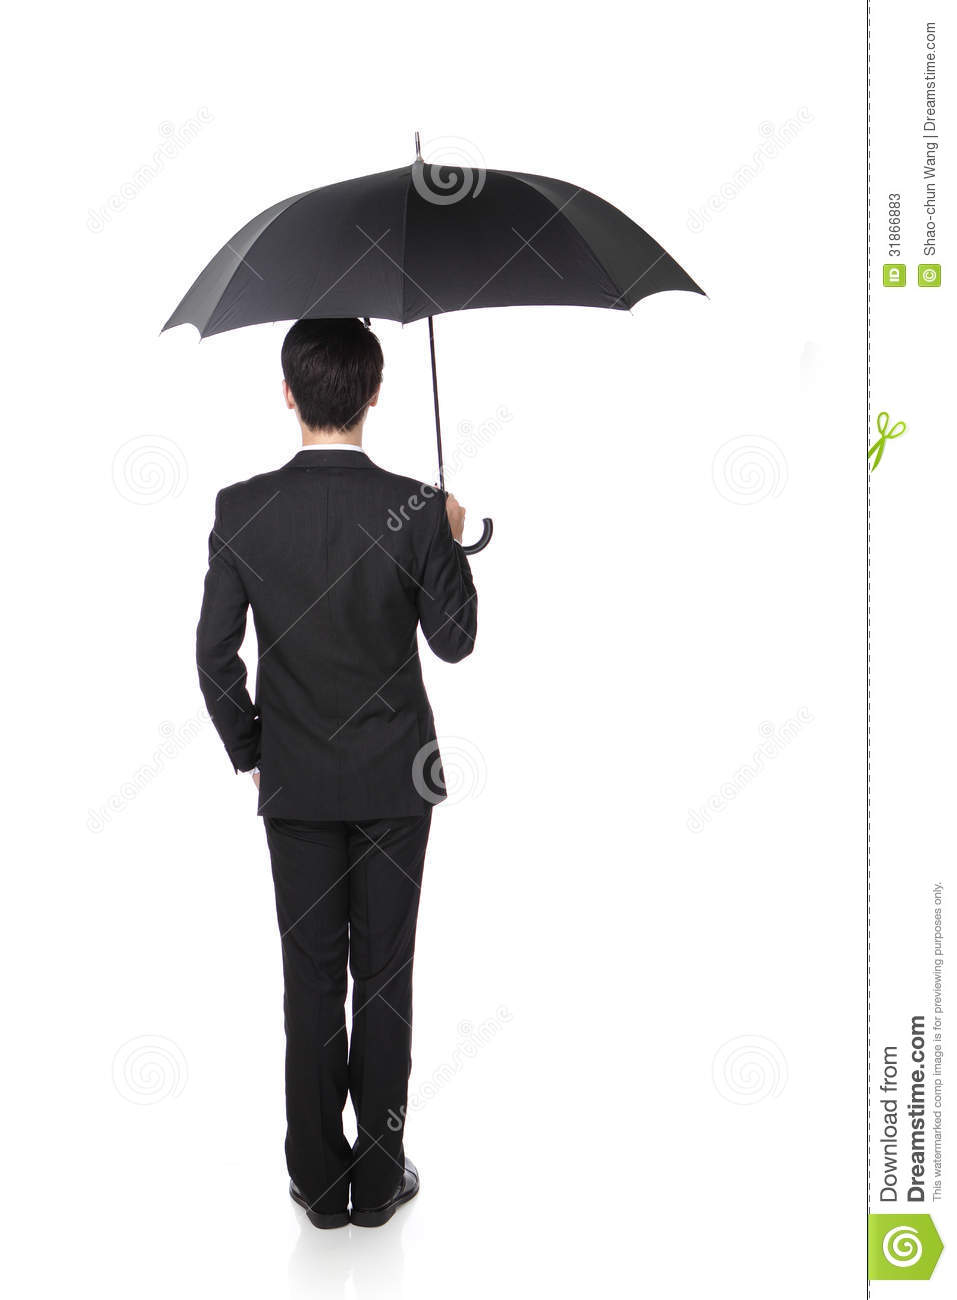 business-man-umbrella-concept-insurance-isolated-against-white-background-asian-male-model-31866883.jpg